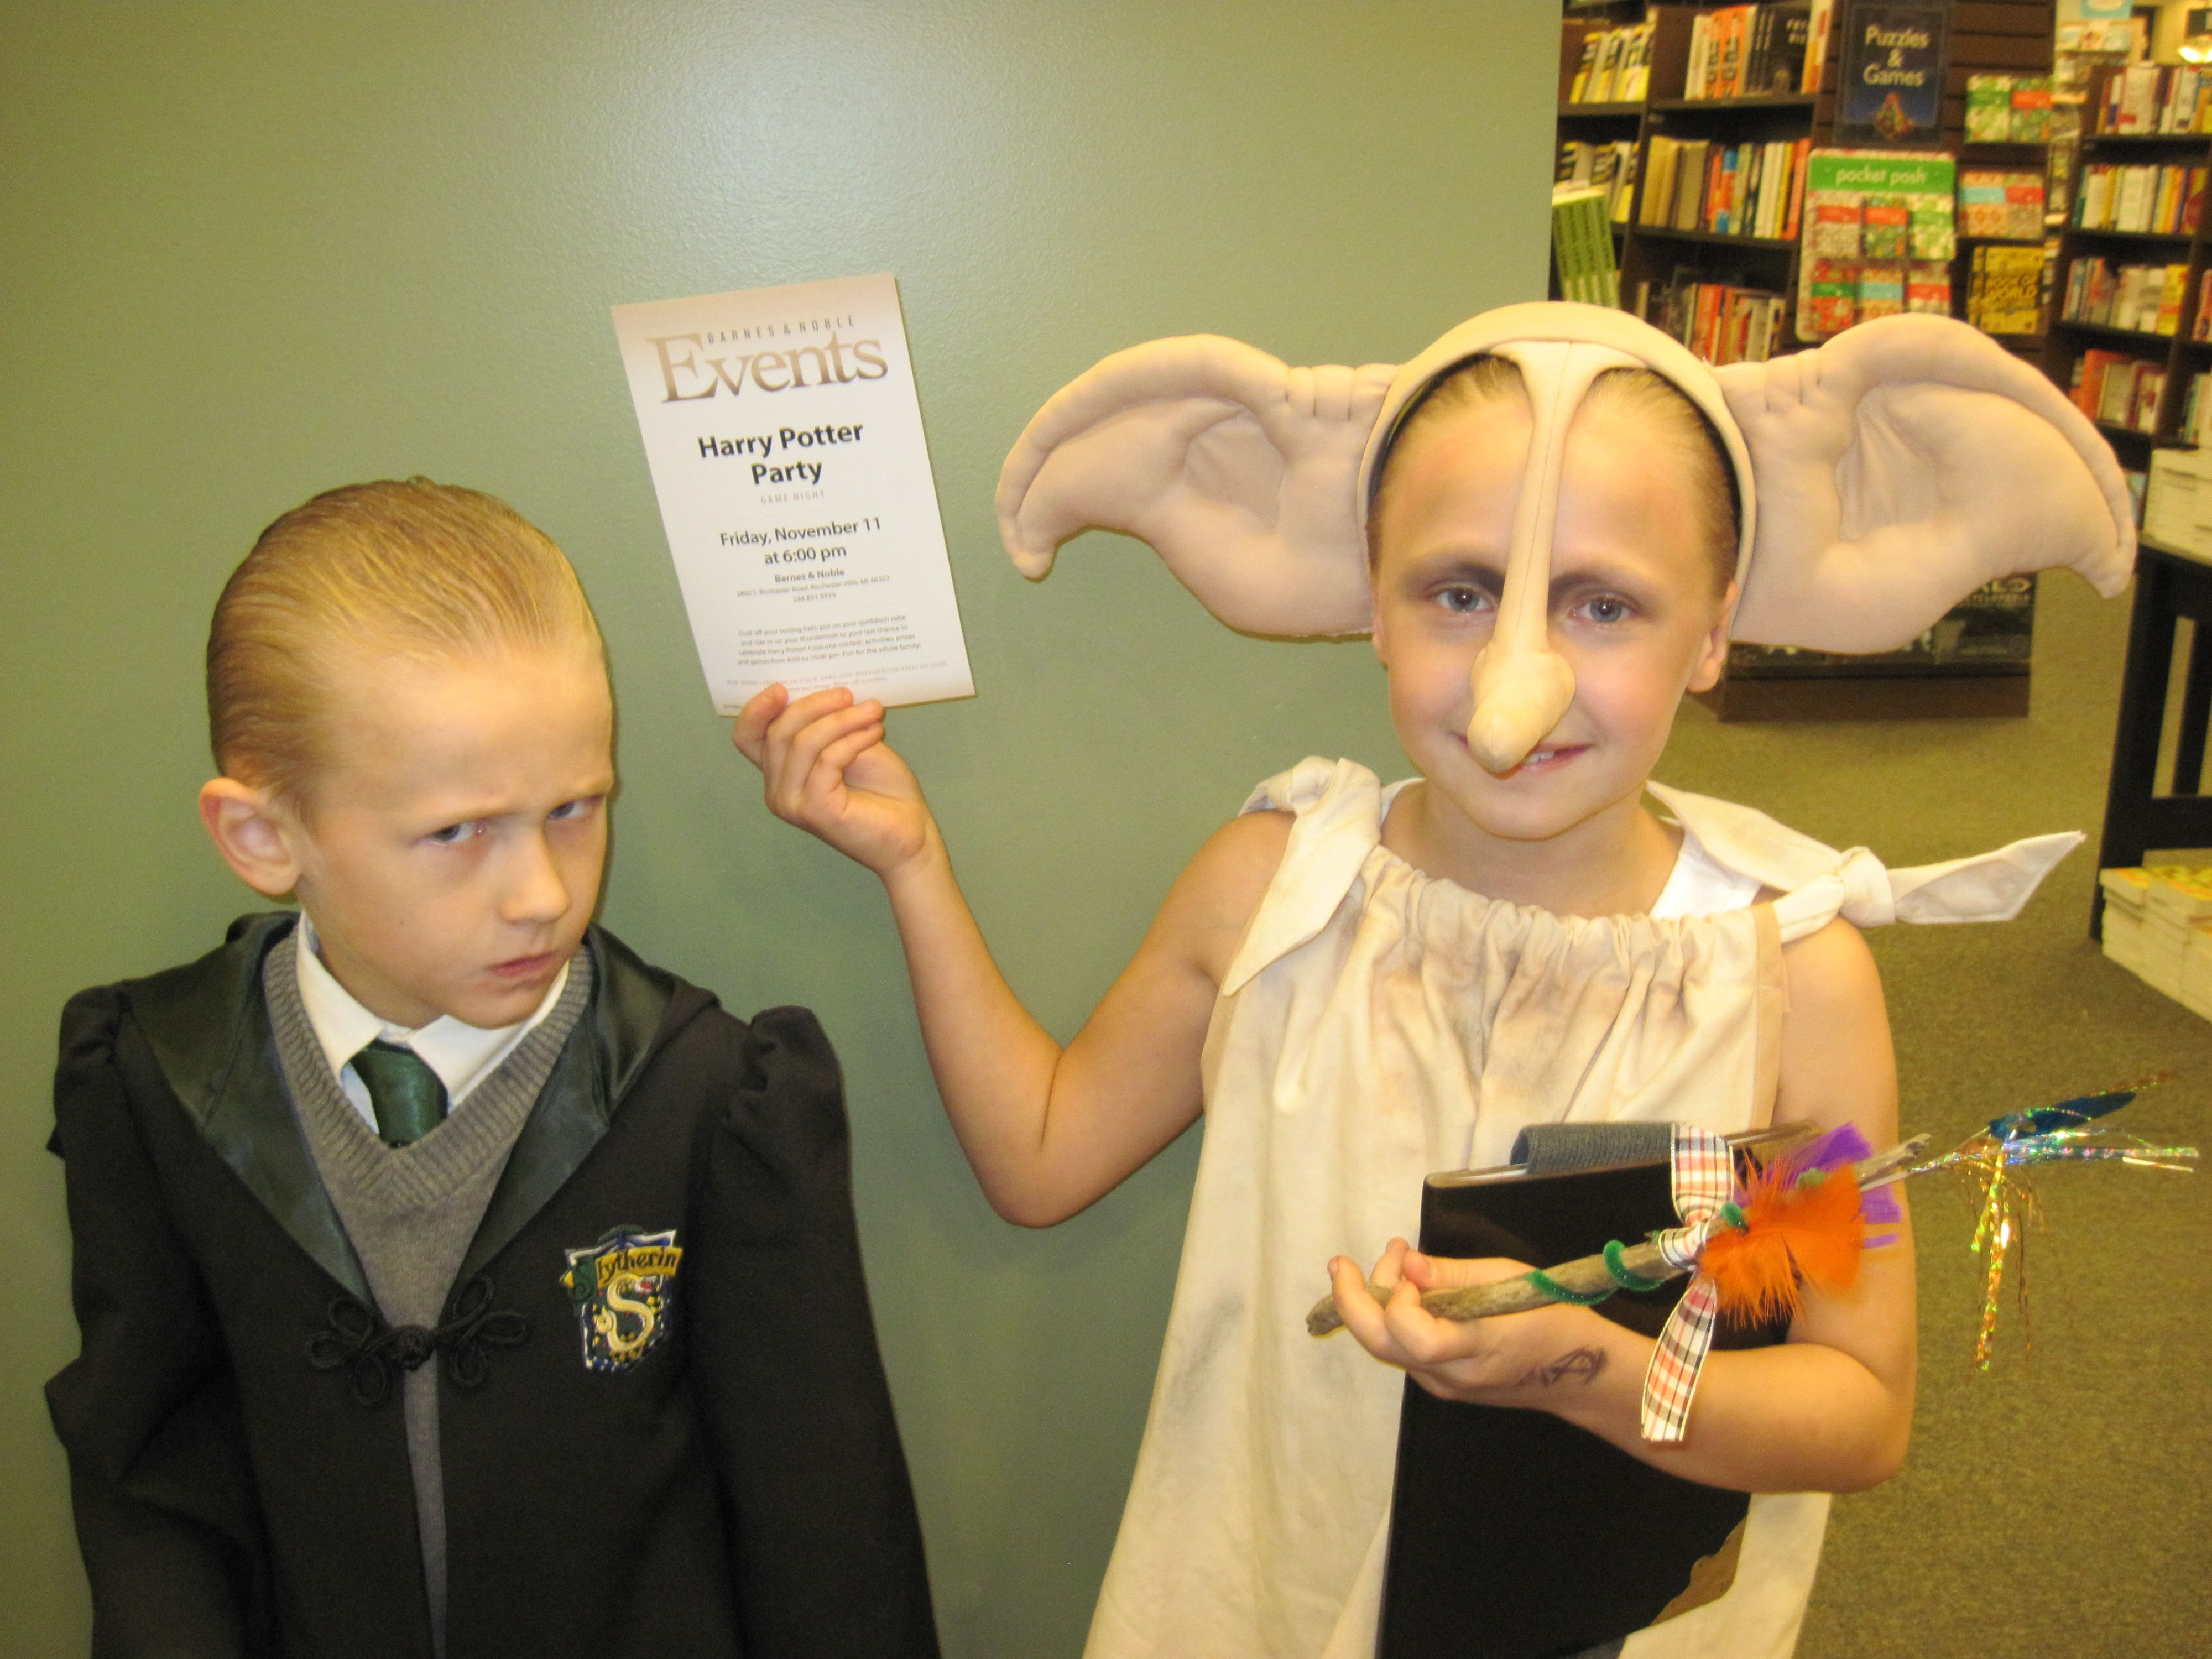 Draco Malfoy and Dobby - our handmade costumes were a big